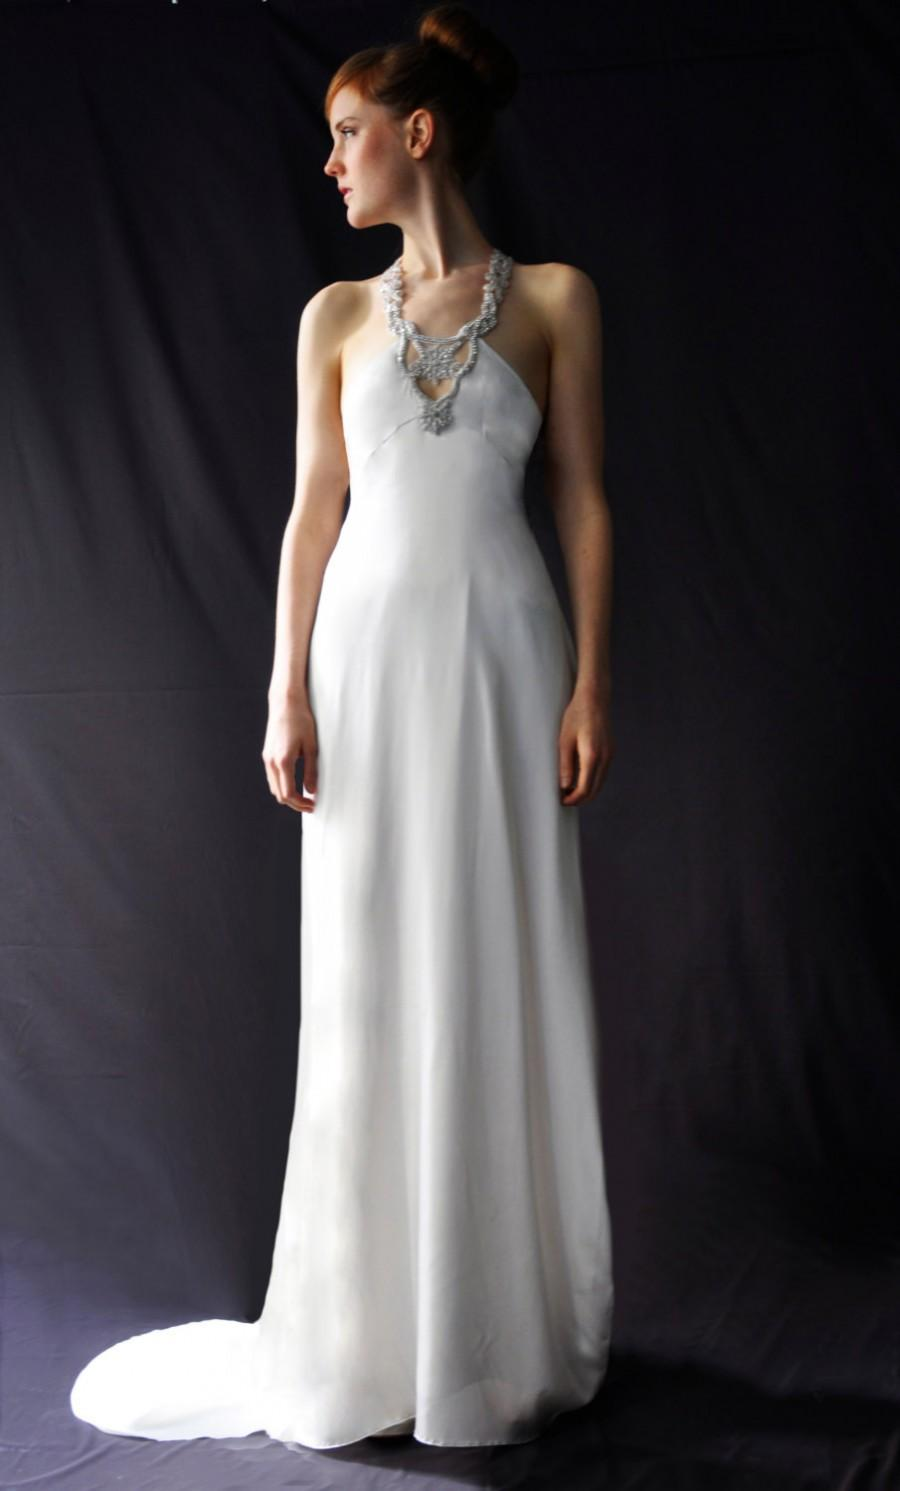 Mariage - As in Brides Magazine: Glamorous Wedding Gown Dress Rhinestones Jeweled Neckline Open Racer Back Fitted Bodice Flared Skirt Custom Made